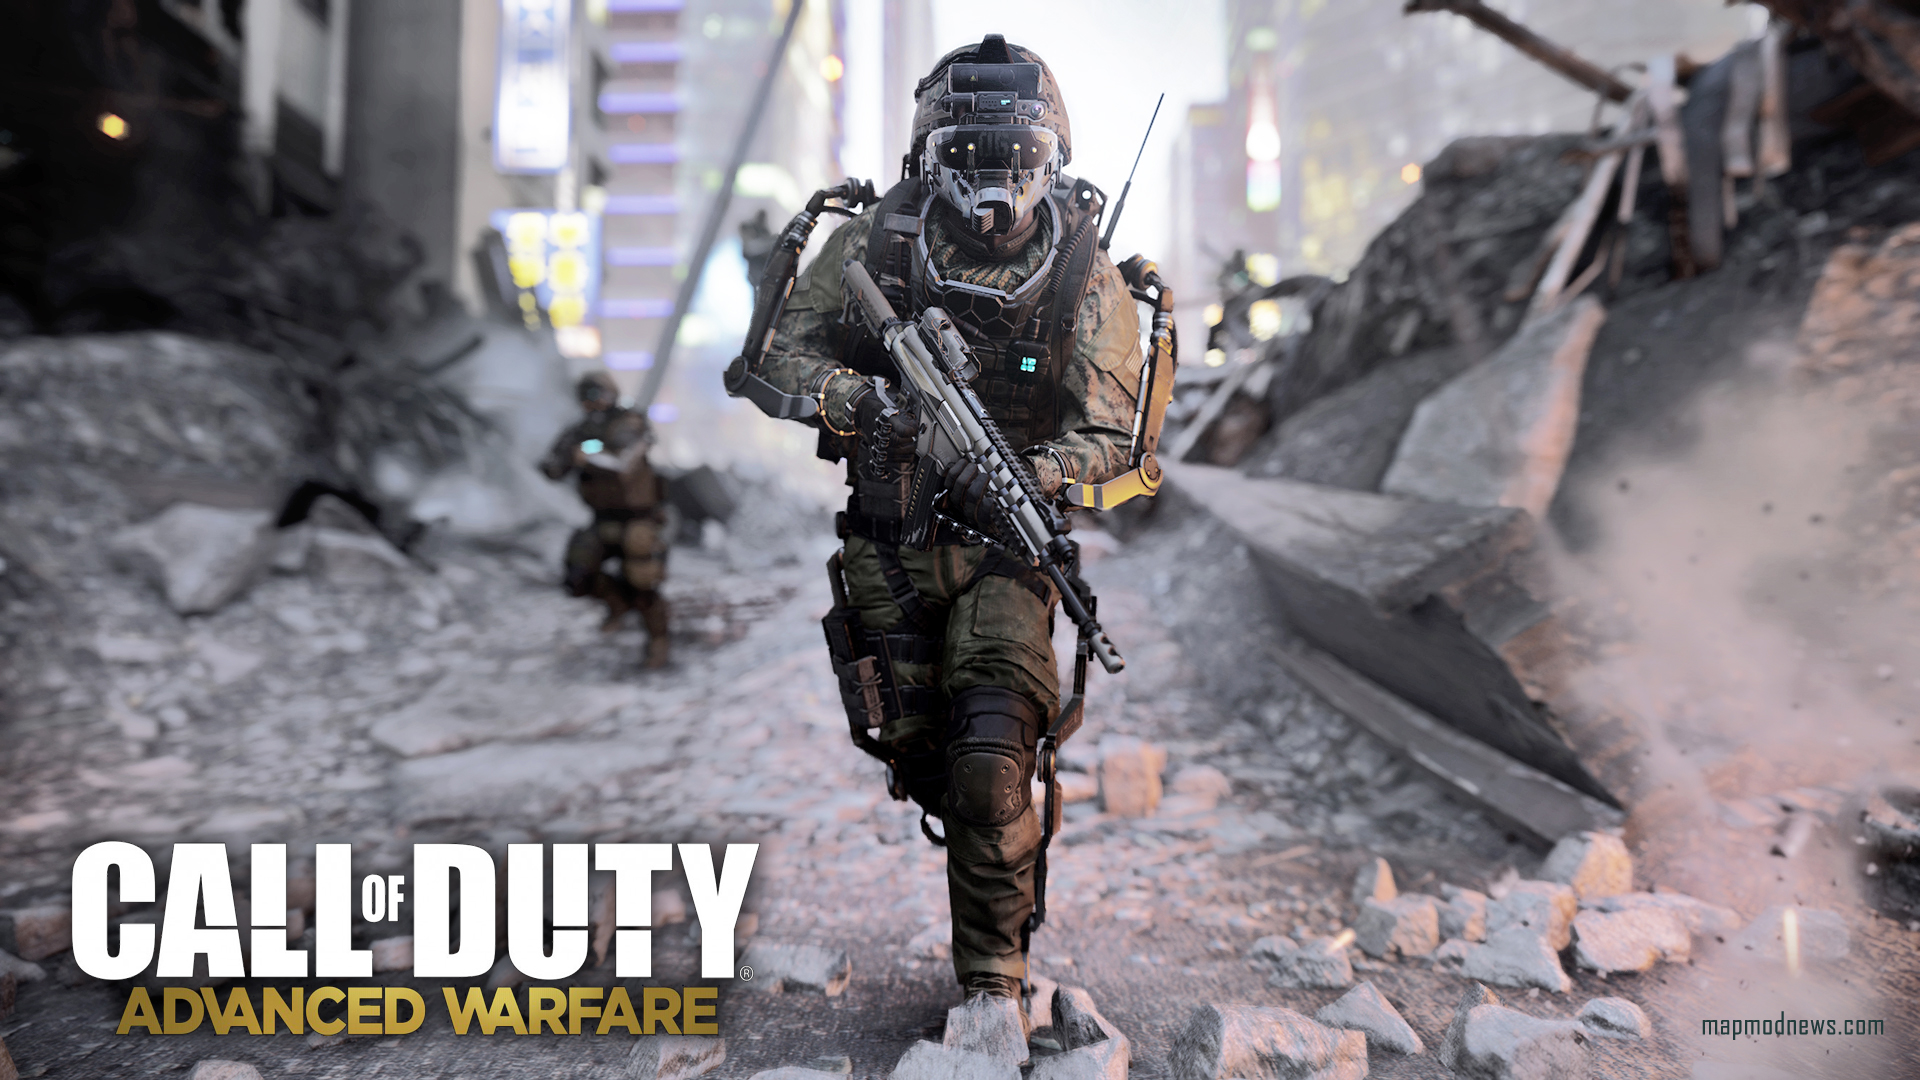 Call-of-Duty-Advanced-Warfare-wallpaper